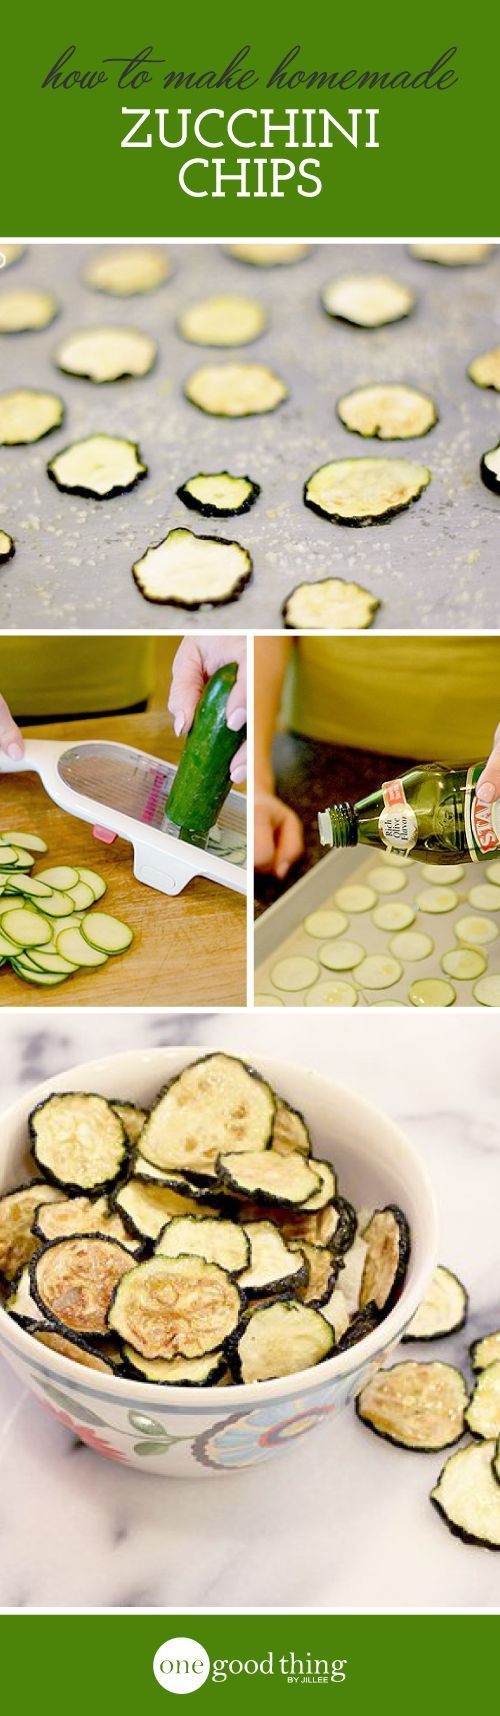 How to make homemade zucchini chips. Just one more way to use up all those garden vegetables.